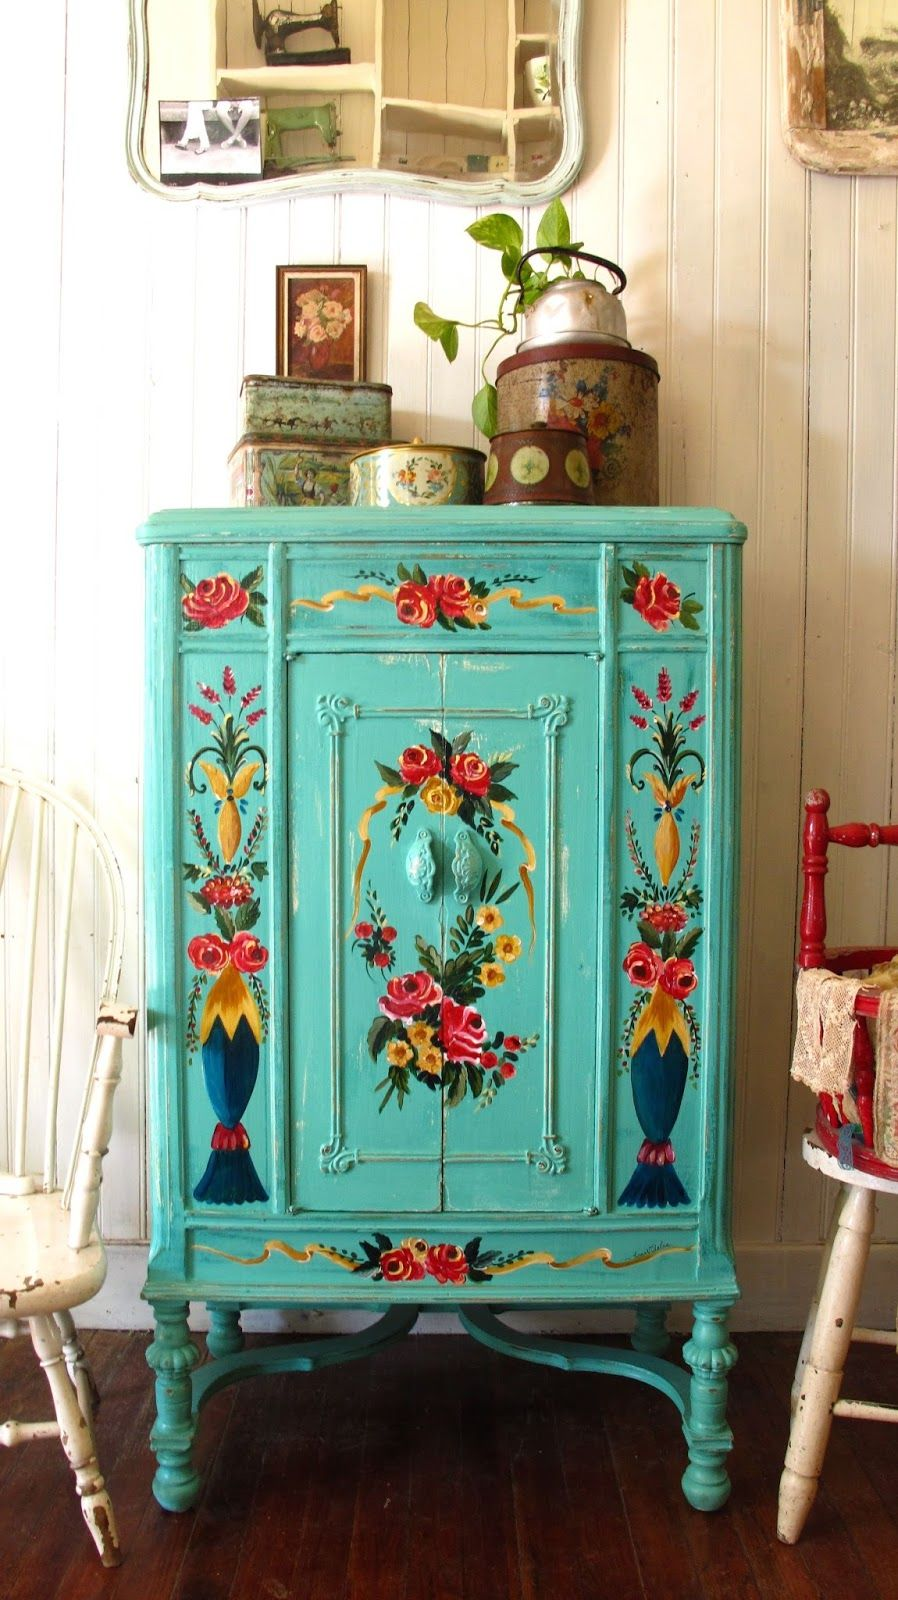 Beautifully Painted Cabinet In A Boho Gypsy Style Using Turquoise Yellow And Orange Red As The Main Feature Colours I Love Furniture Like This